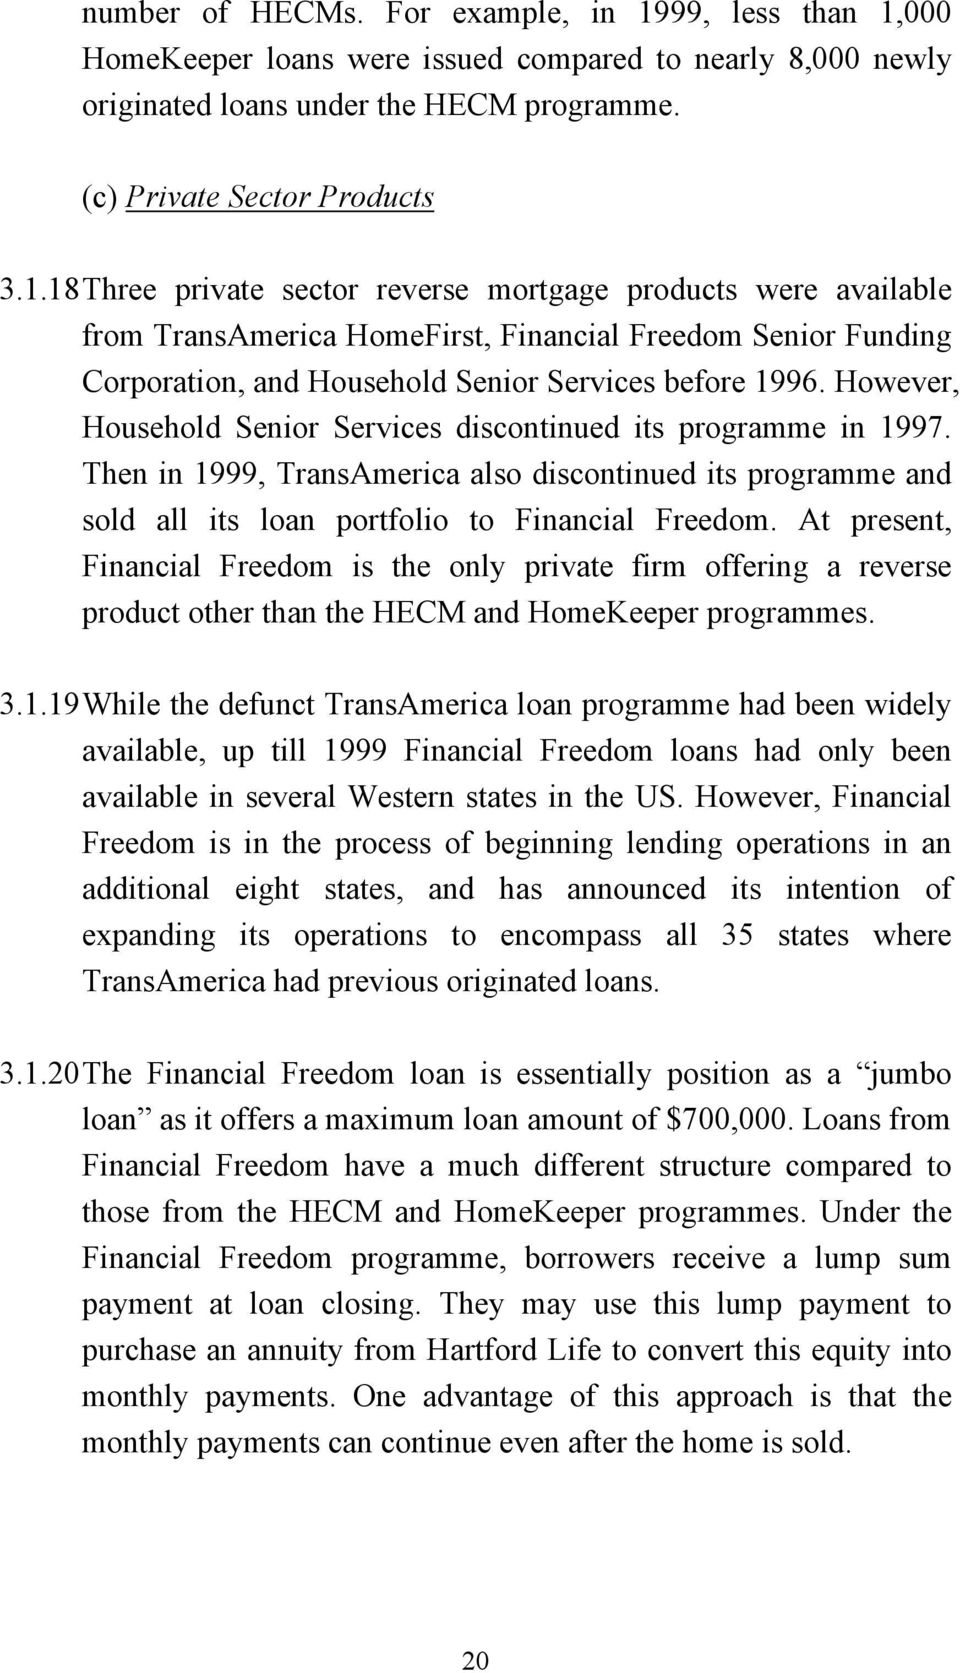 However, Household Senior Services discontinued its programme in 1997. Then in 1999, TransAmerica also discontinued its programme and sold all its loan portfolio to Financial Freedom.